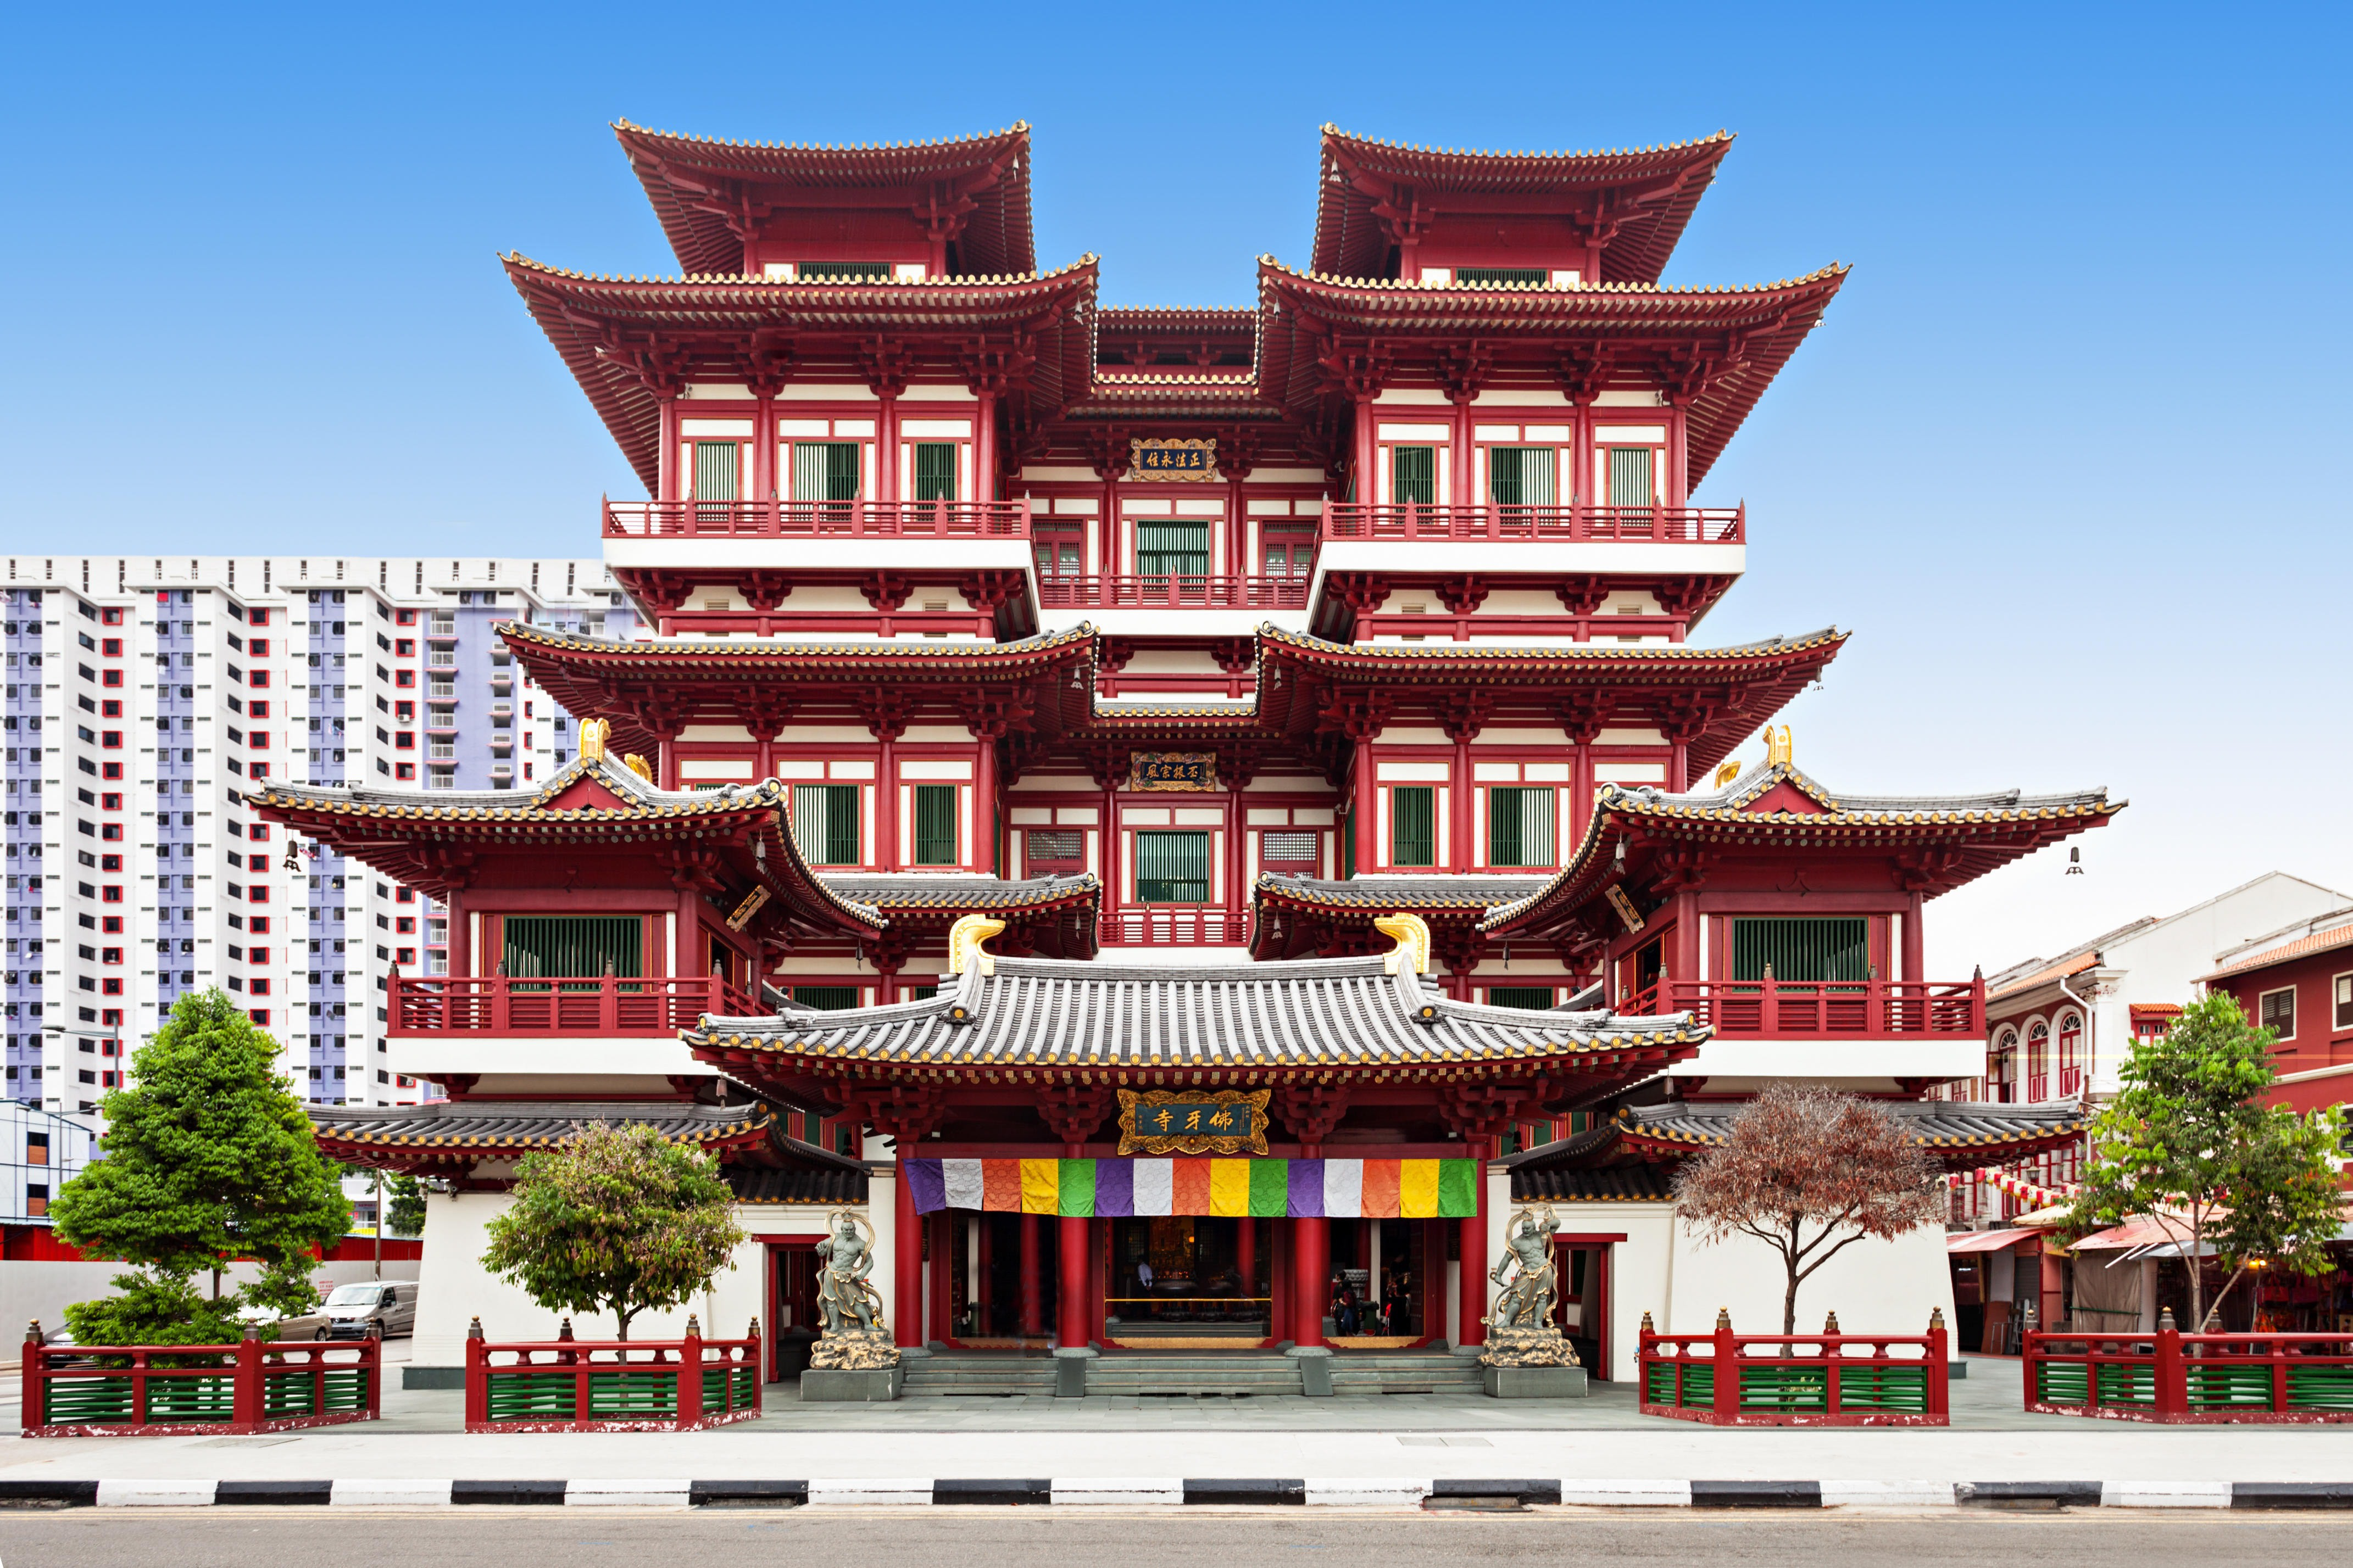 Top 10 Things to Do in Chinatown, Singapore